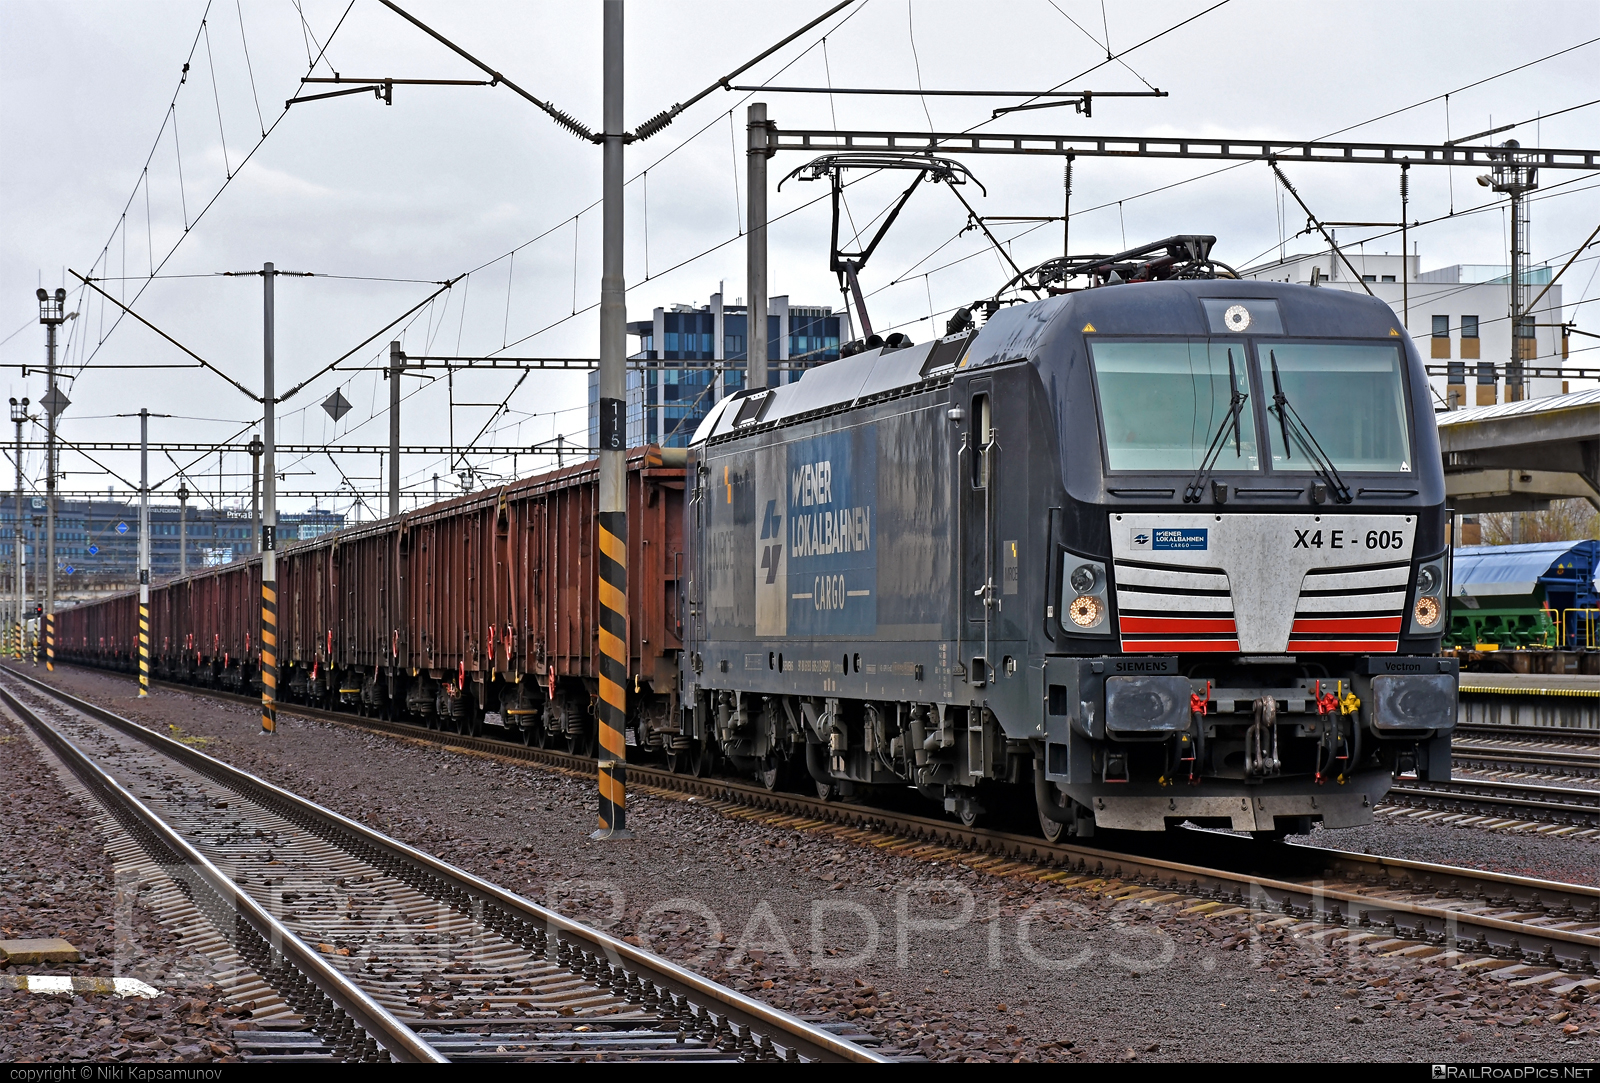 Siemens Vectron AC - 193 605 operated by Wiener Lokalbahnen Cargo GmbH #dispolok #mitsuirailcapitaleurope #mitsuirailcapitaleuropegmbh #mrce #siemens #siemensvectron #siemensvectronac #vectron #vectronac #wienerlokalbahnencargo #wienerlokalbahnencargogmbh #wlc